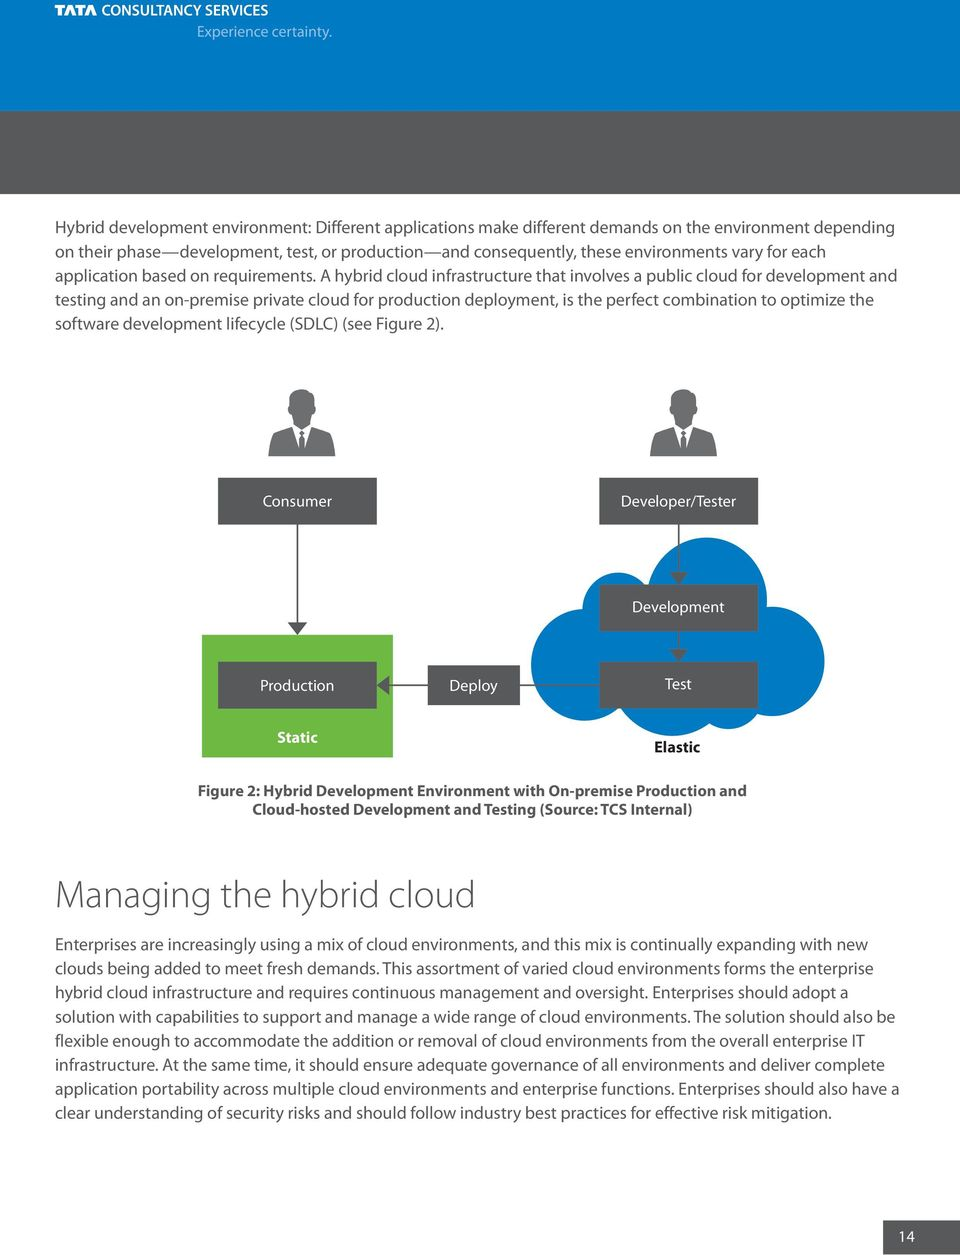 A hybrid cloud infrastructure that involves a public cloud for development and testing and an on-premise private cloud for production deployment, is the perfect combination to optimize the software